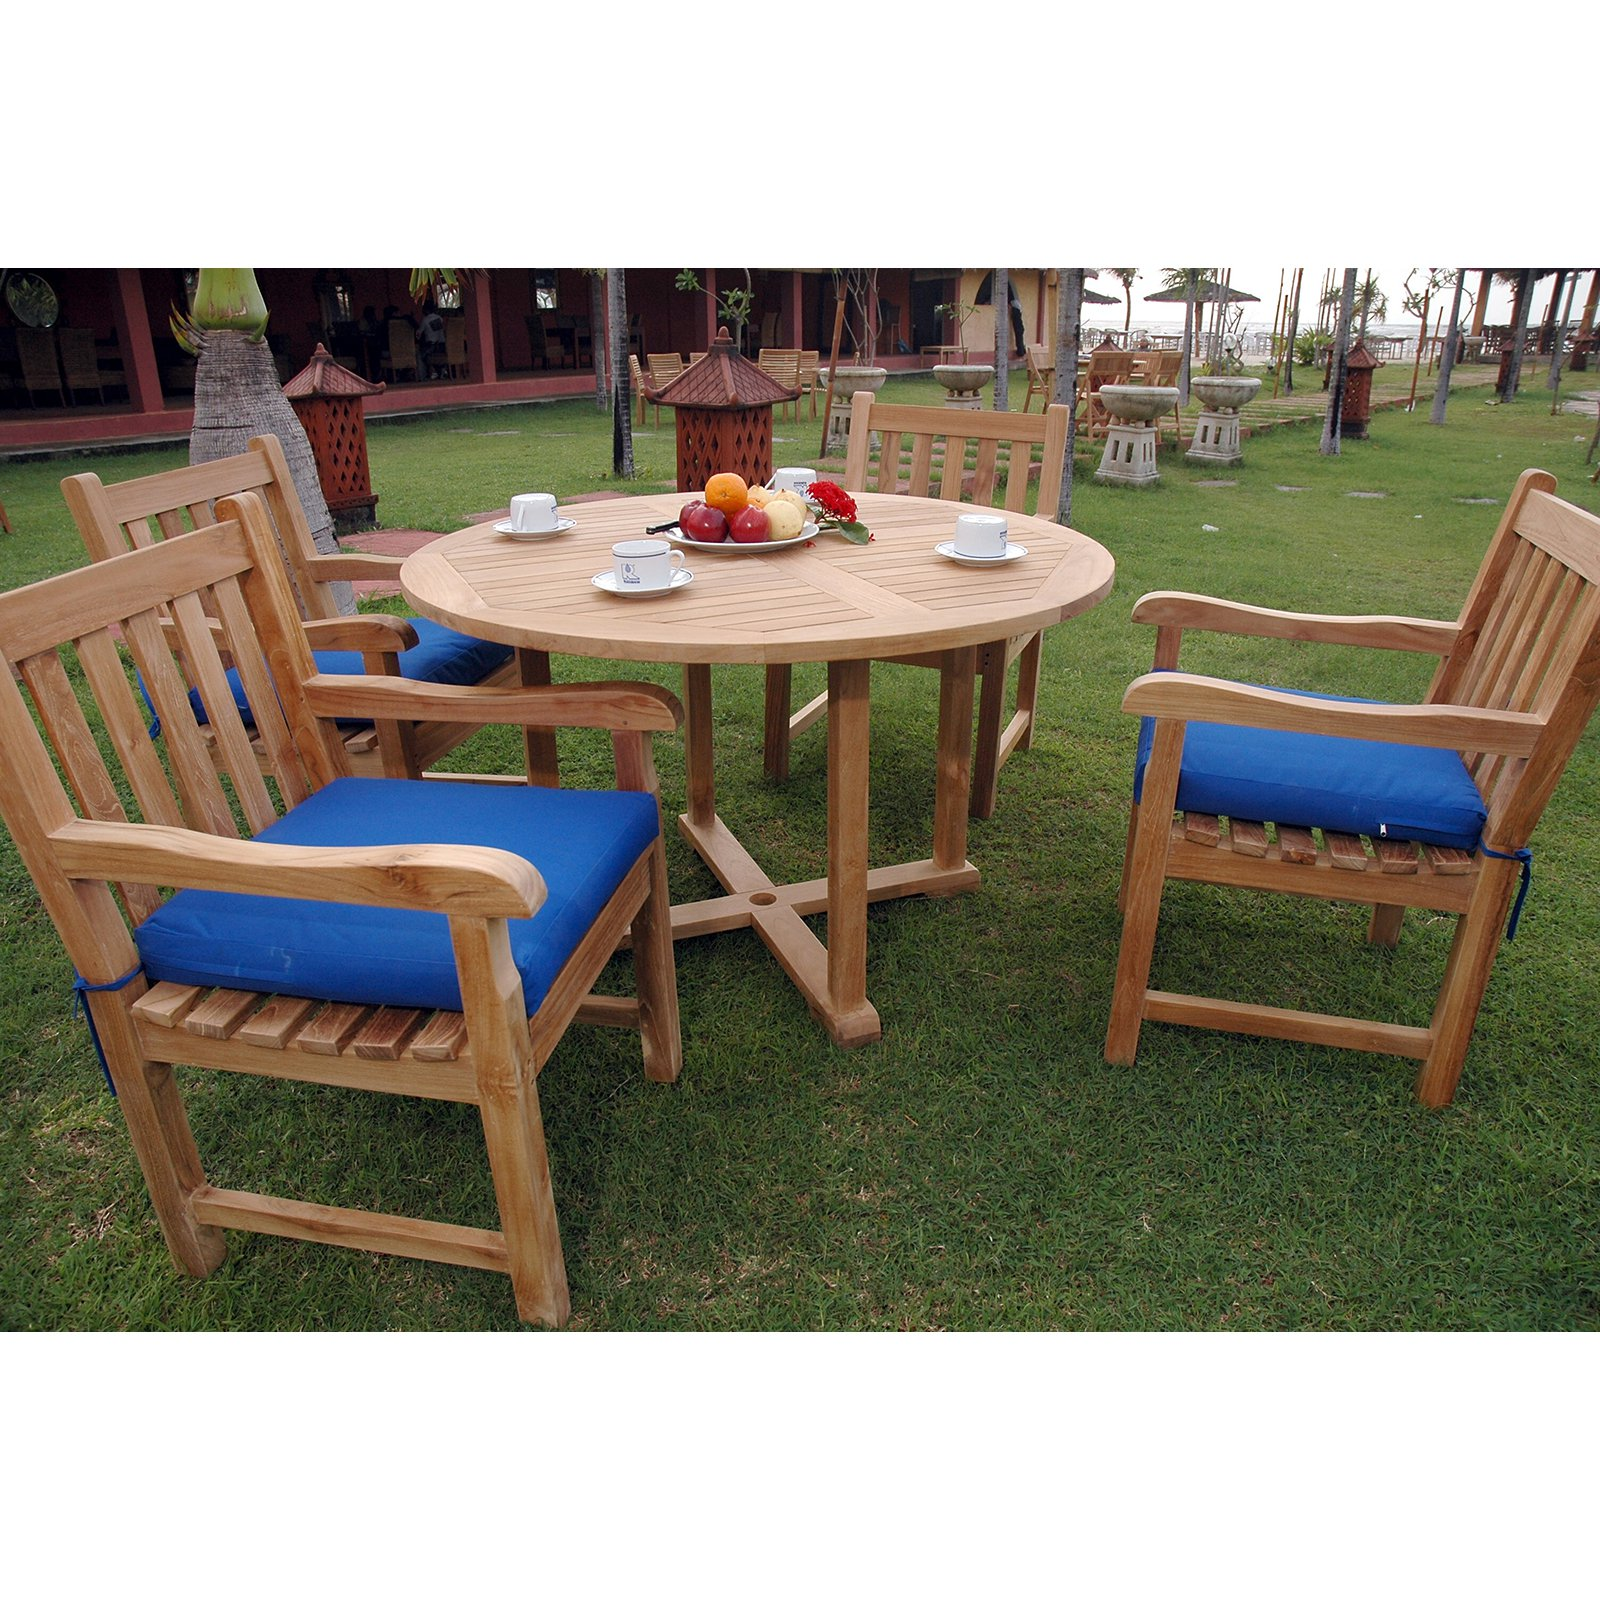 Anderson Teak Classic 5 Piece Round Patio Dining Set